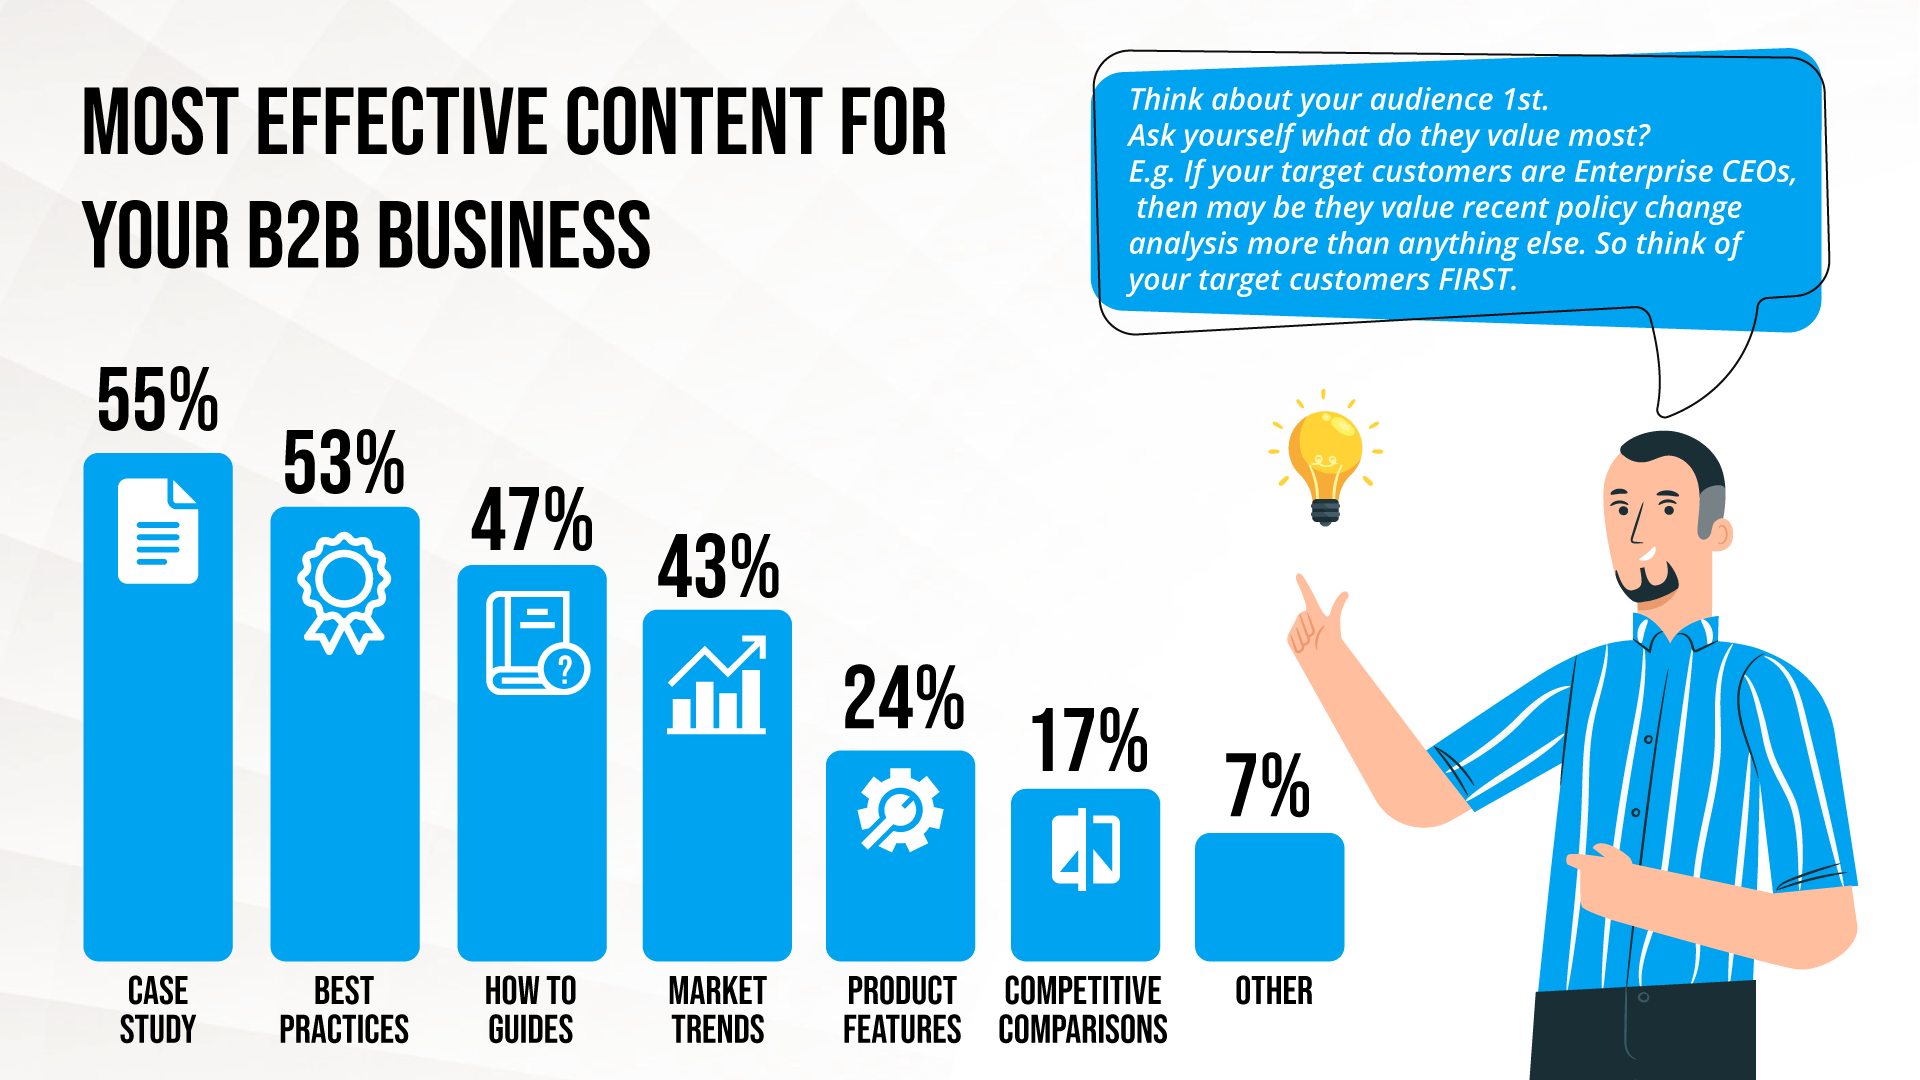 Most effective content for your b2b business